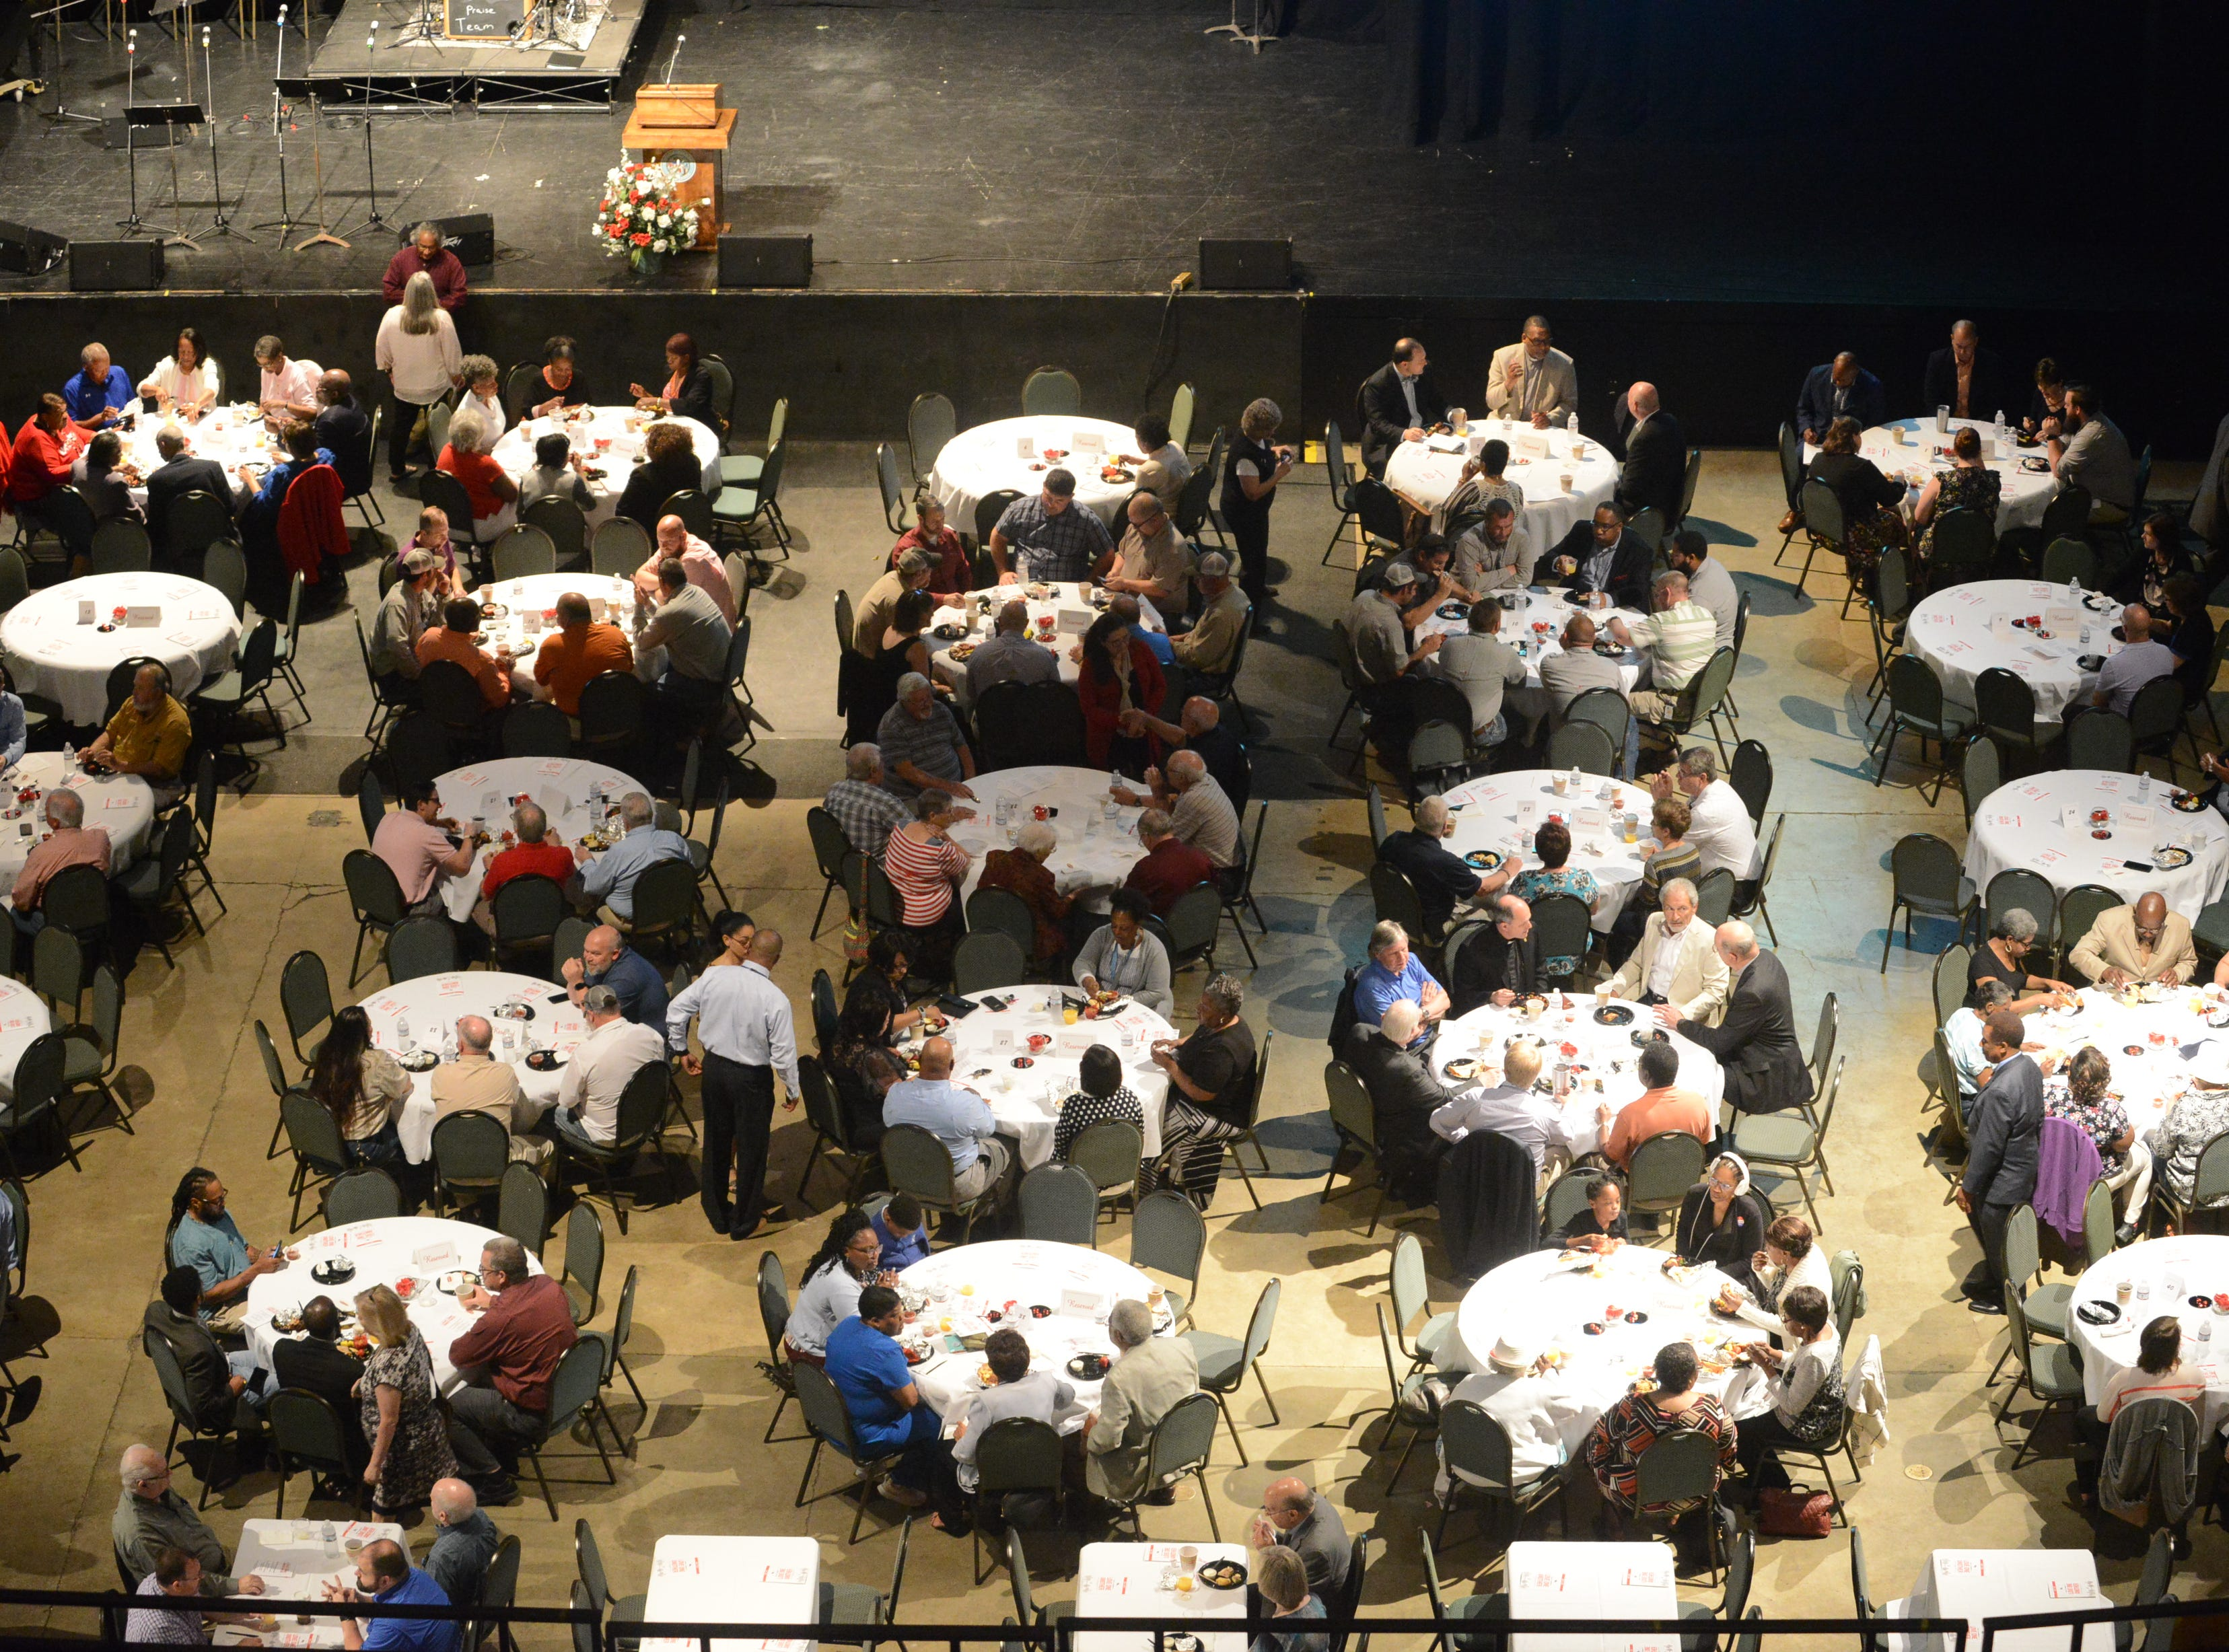 Hundreds of people attended the Mayor's Prayer Breakfast to celebrate National Day of Prayer at Carl Perkins Civic Center on May 2 in Jackson, Tenn.